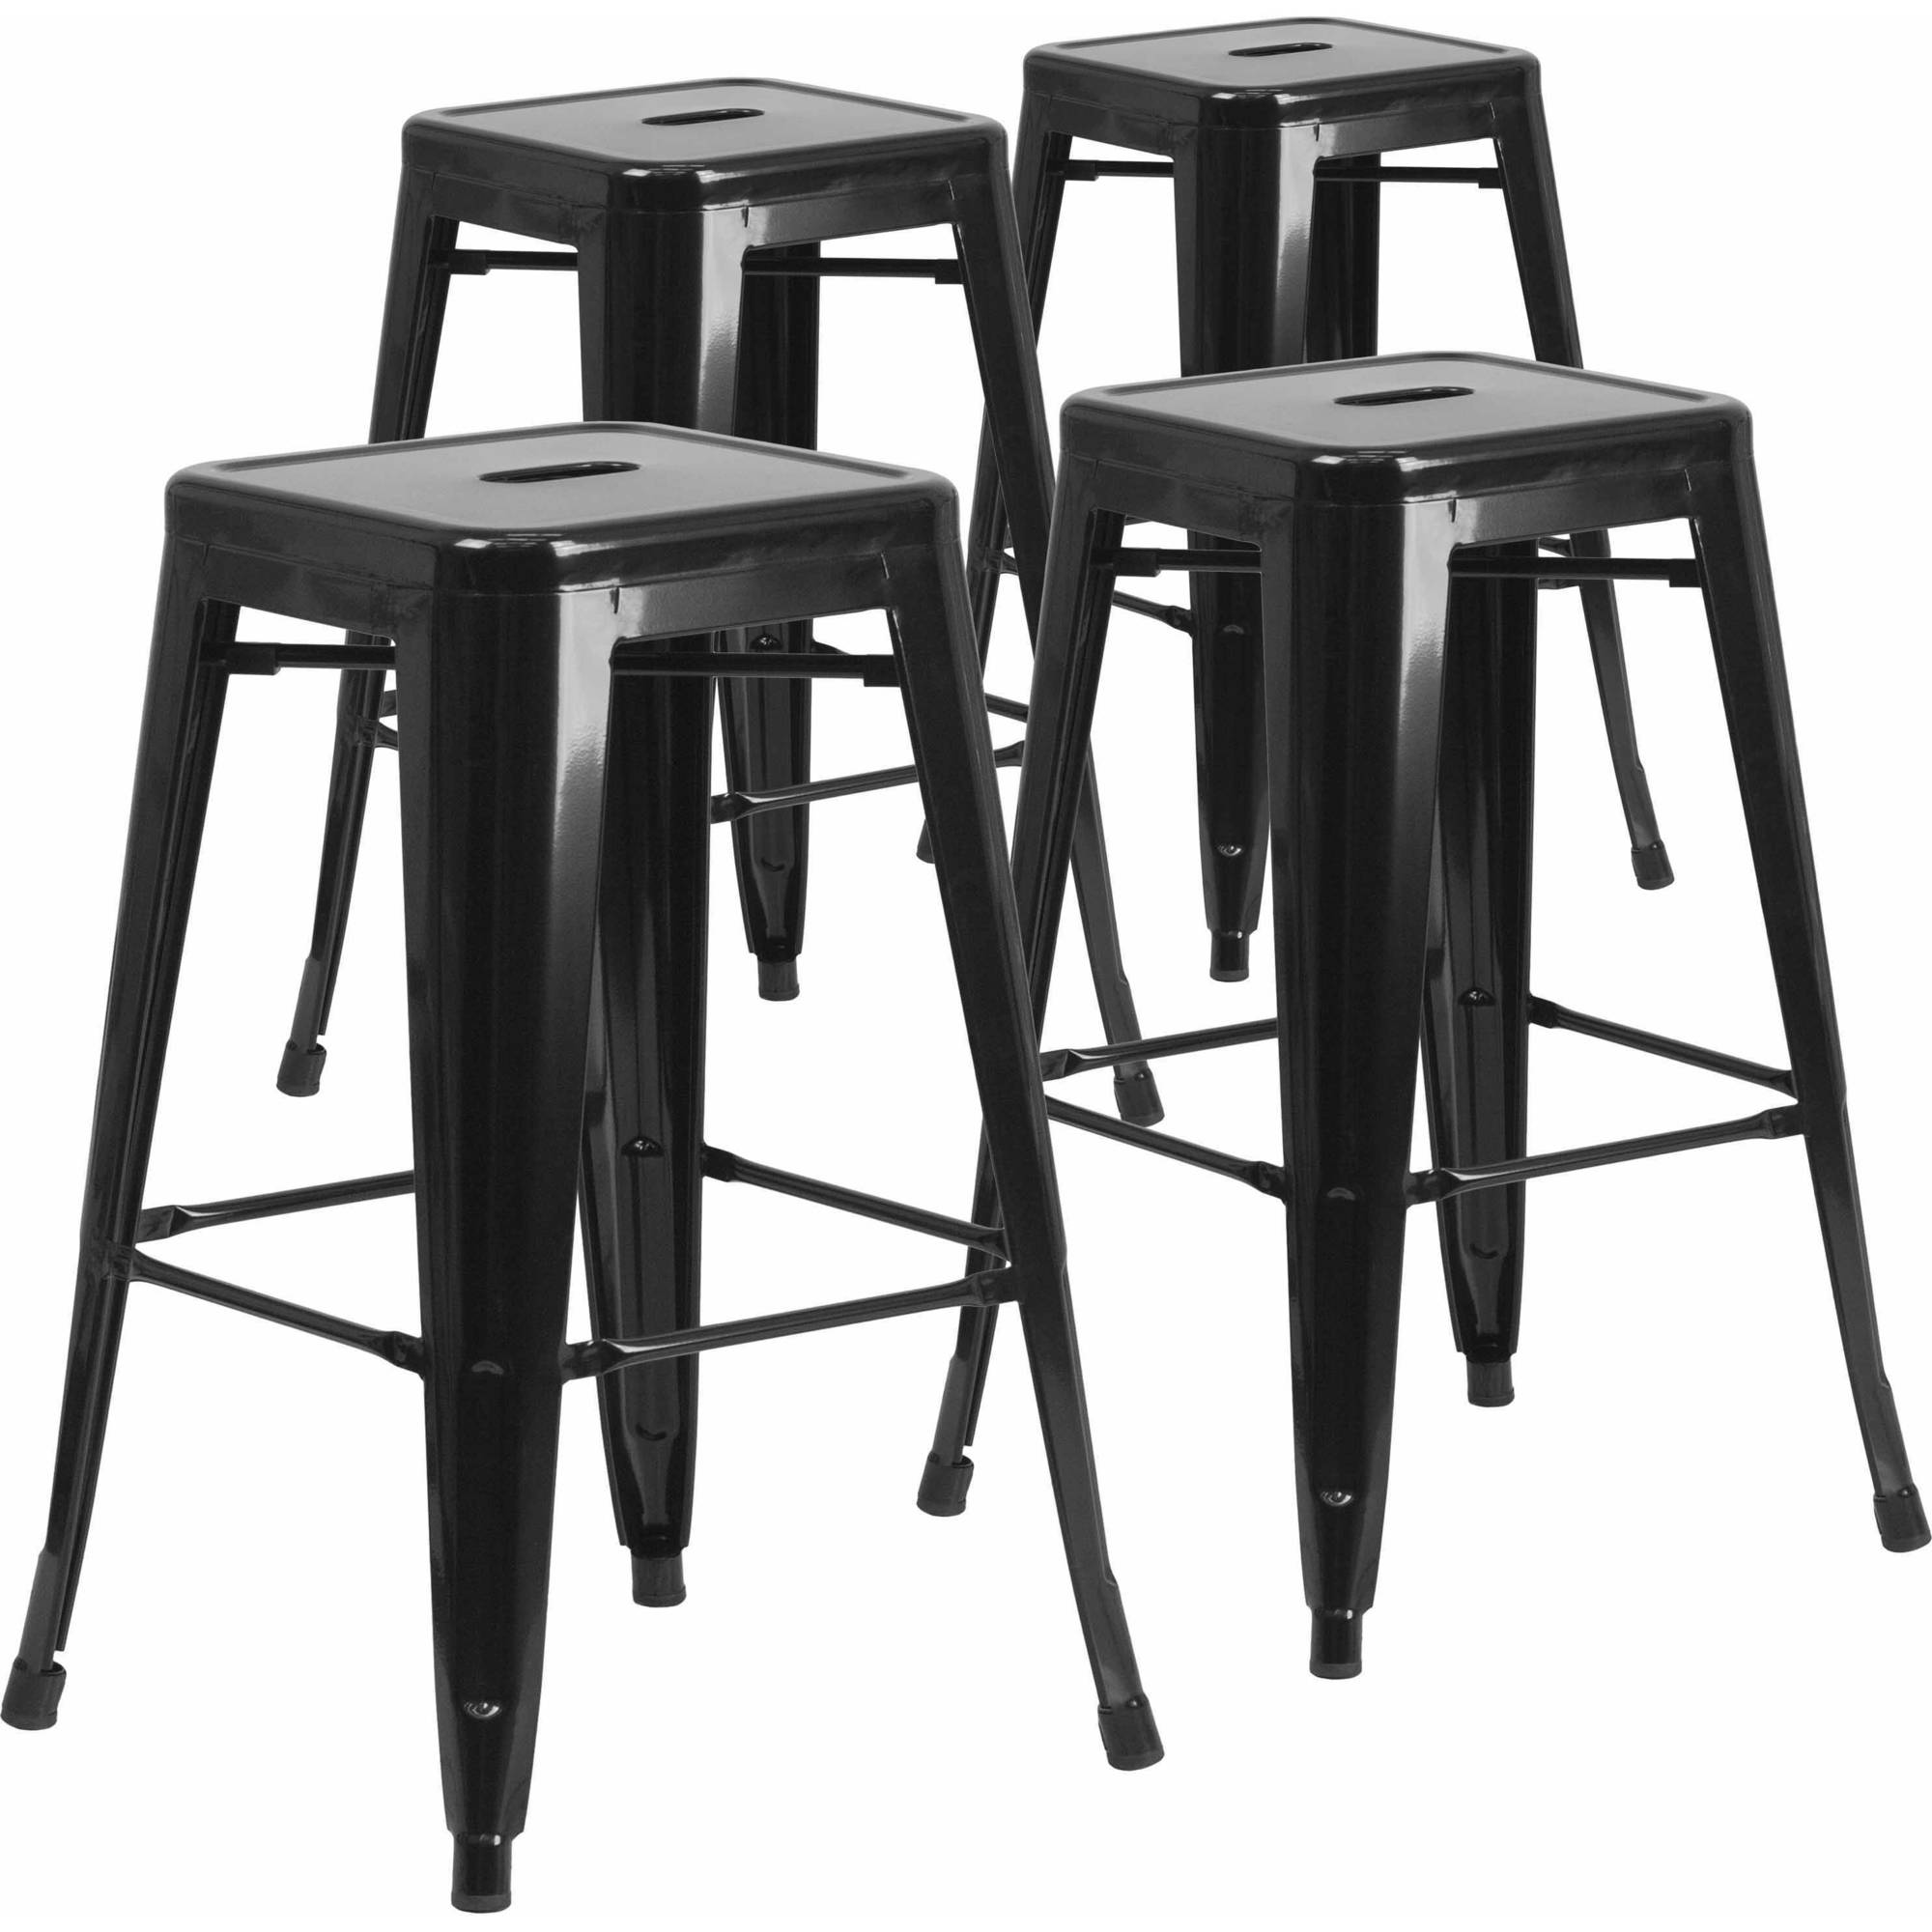 Groovy Mainstays 29 Ladder Back Barstool Black Finish Beige Spiritservingveterans Wood Chair Design Ideas Spiritservingveteransorg